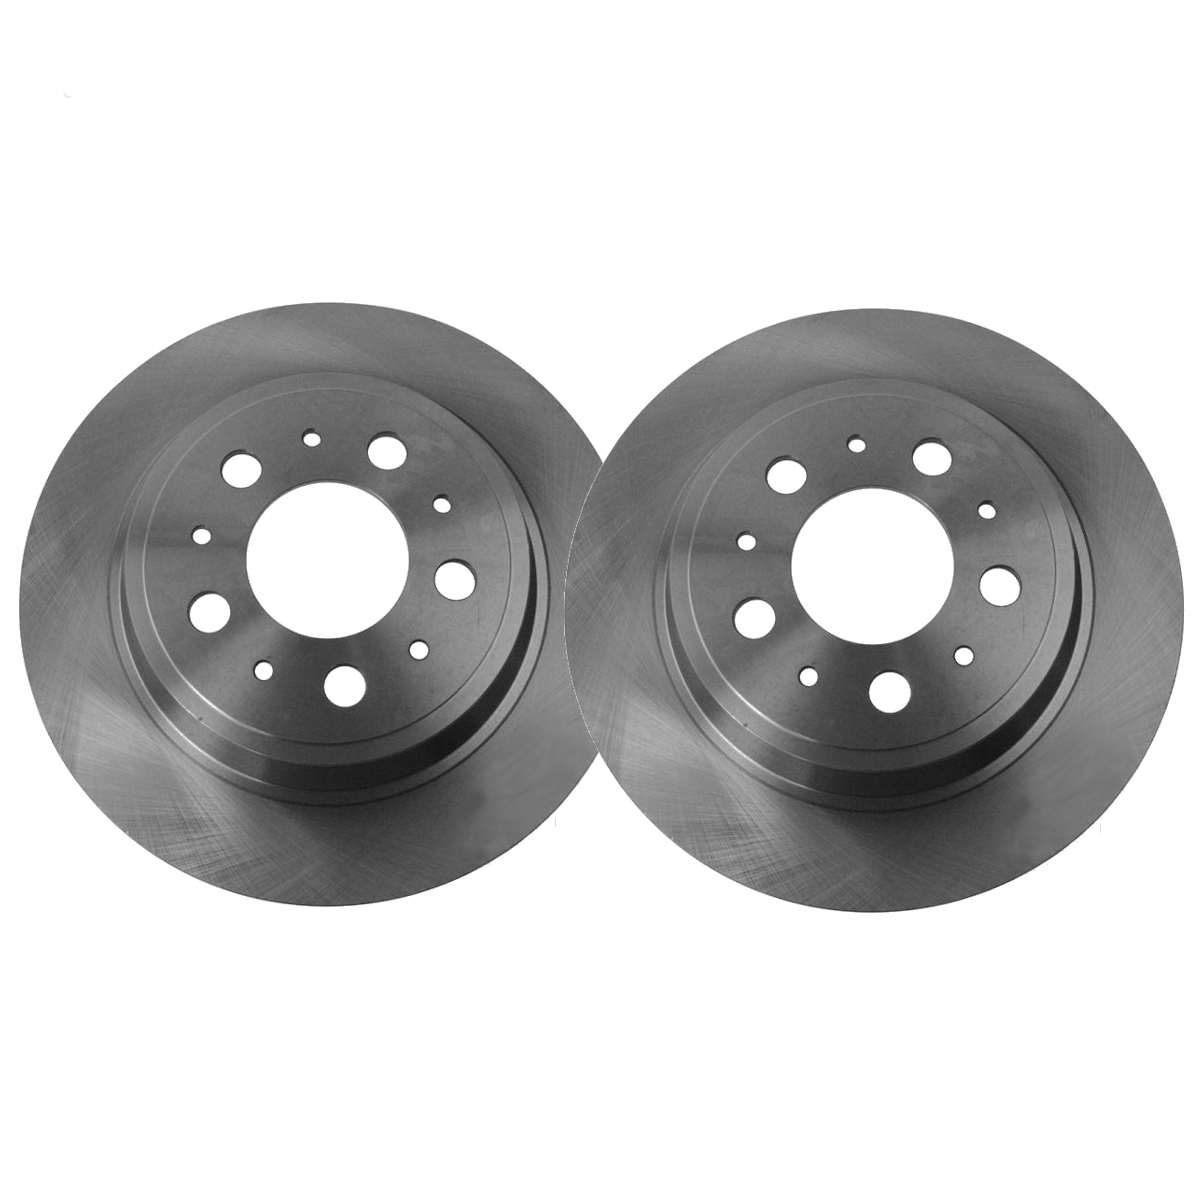 Front Brake Rotors Pair for 286mm Size Models – See Fitment